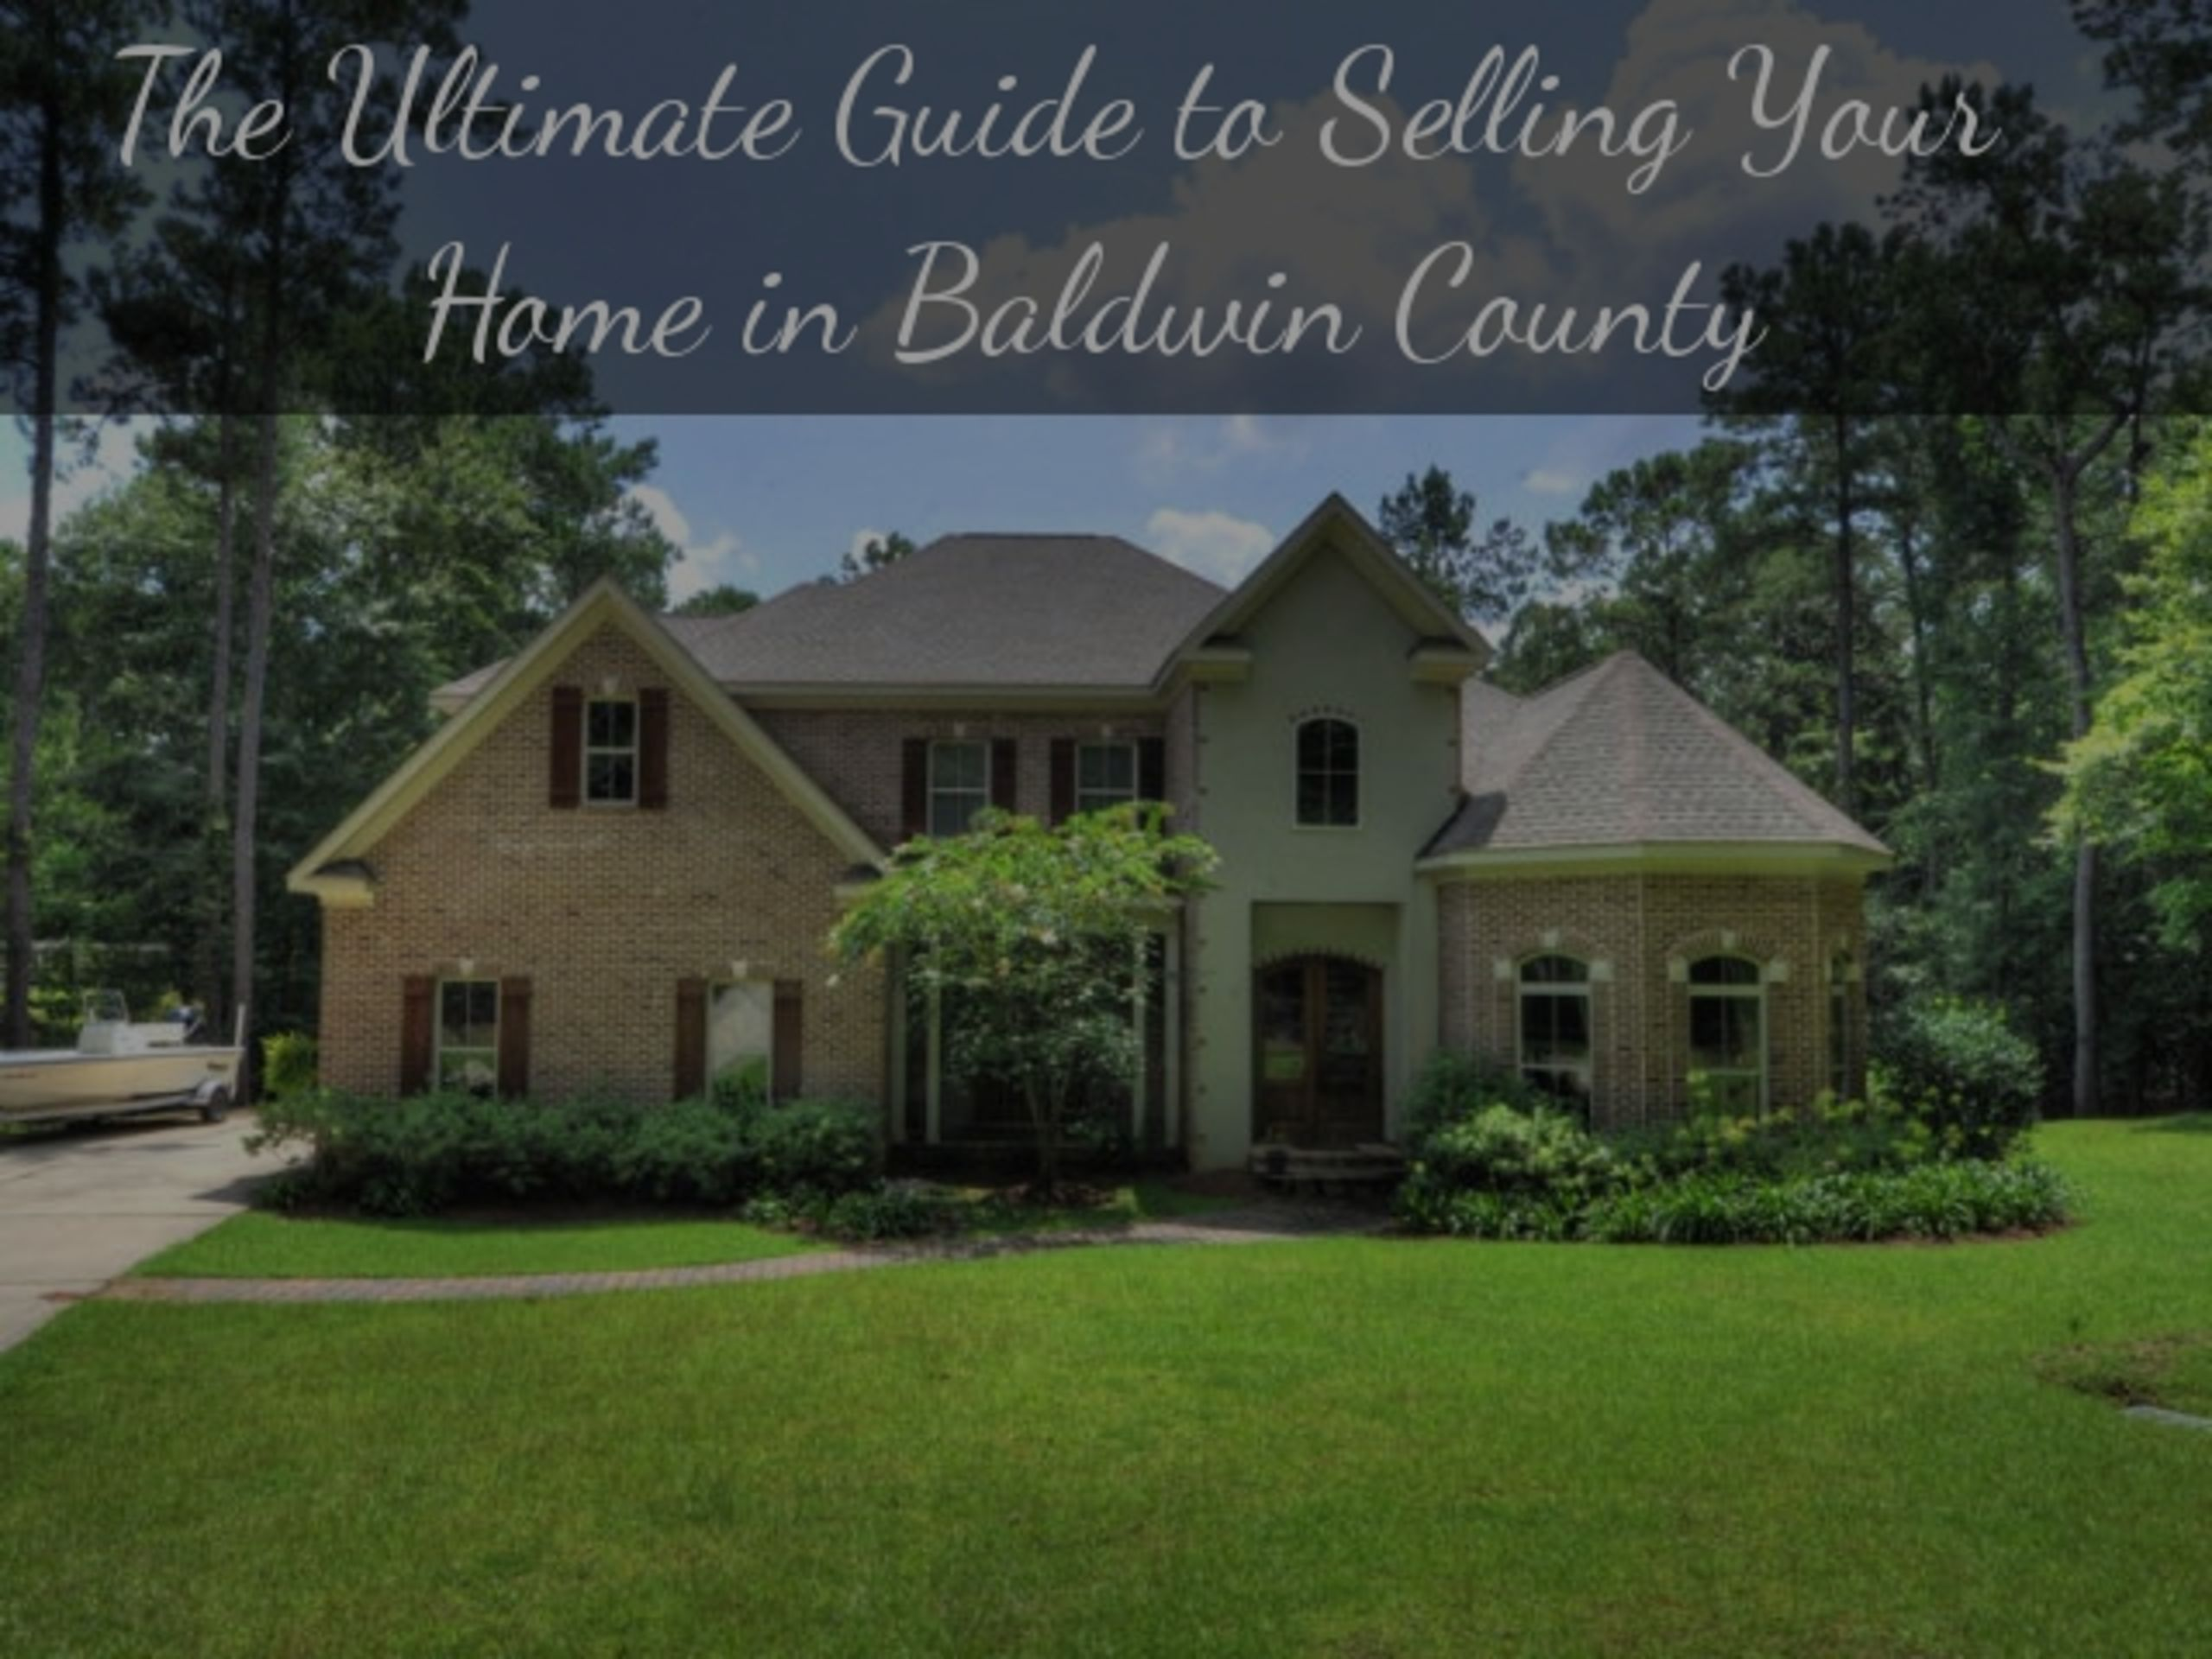 Ultimate Guide to Selling Your Home in Baldwin County